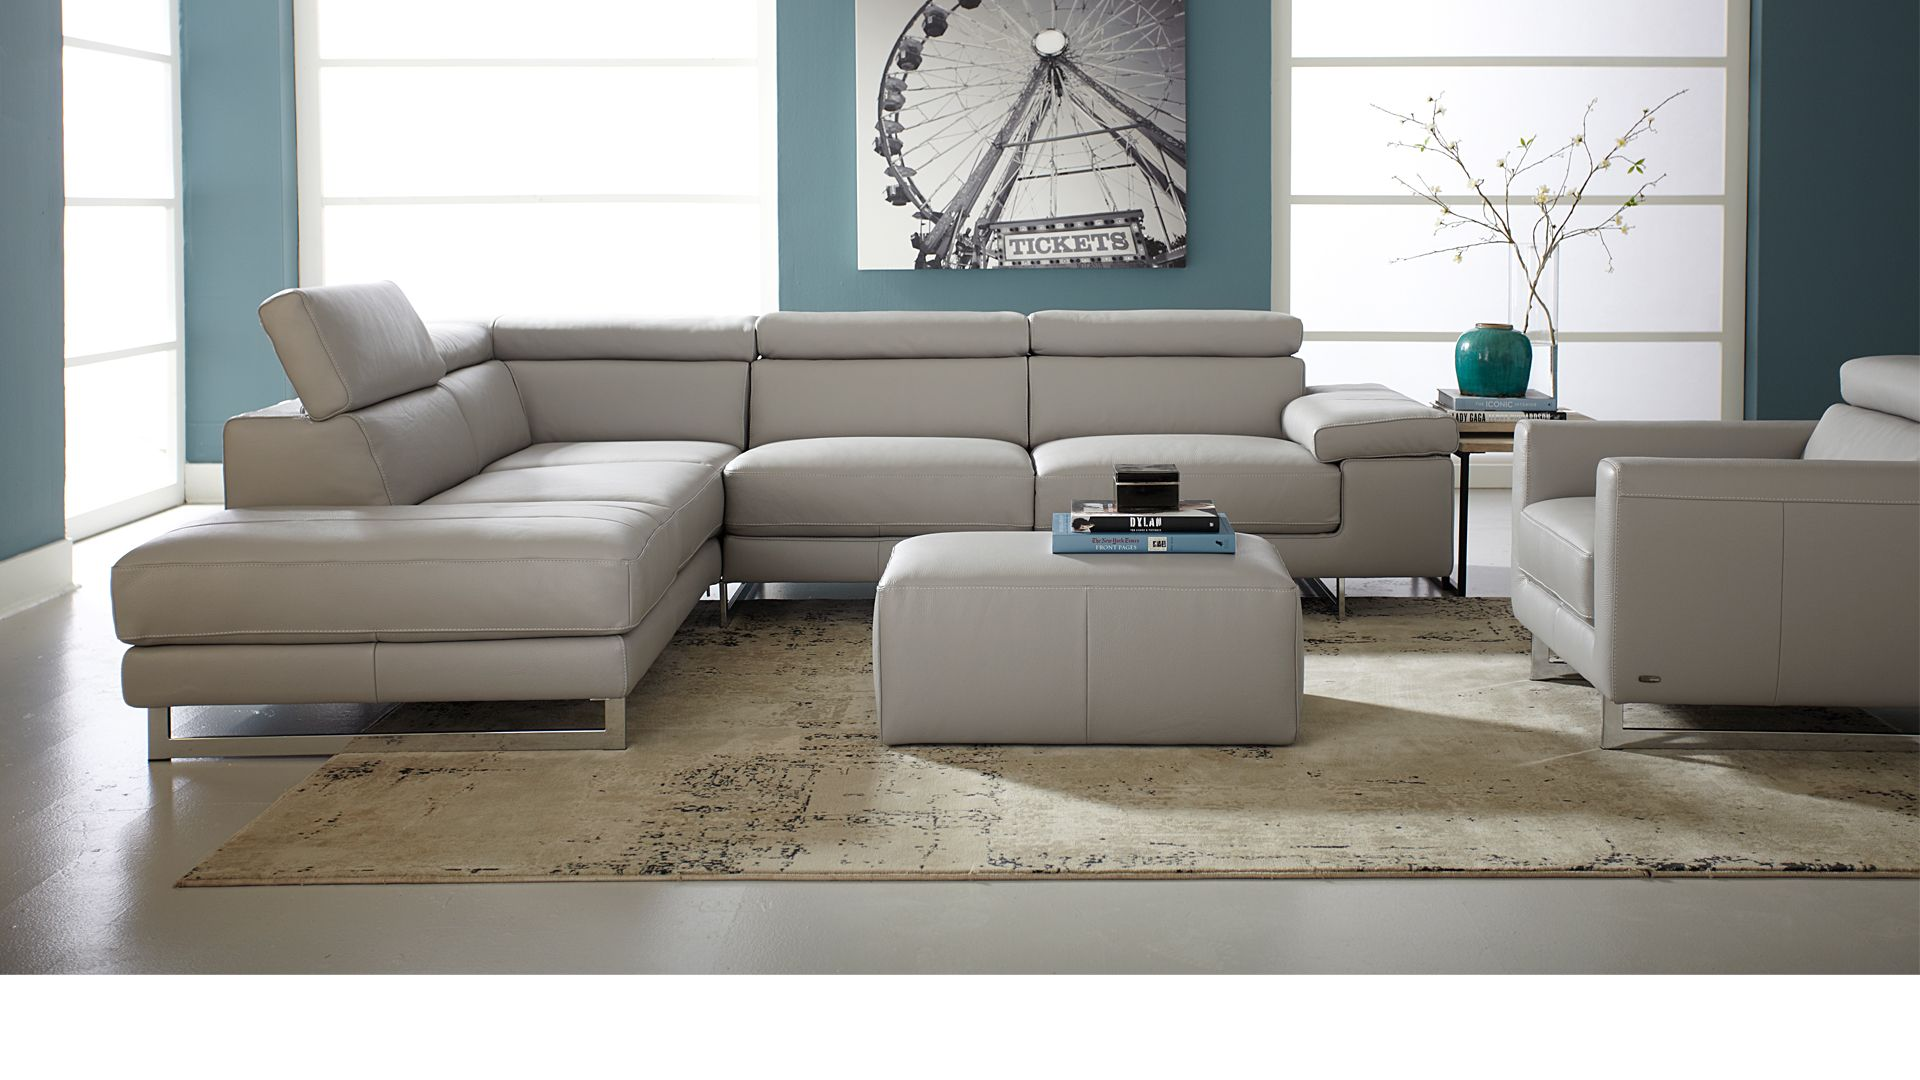 natuzzi editions casavogue contemporary pinterest living rooms interiors and sectional sofa. Black Bedroom Furniture Sets. Home Design Ideas